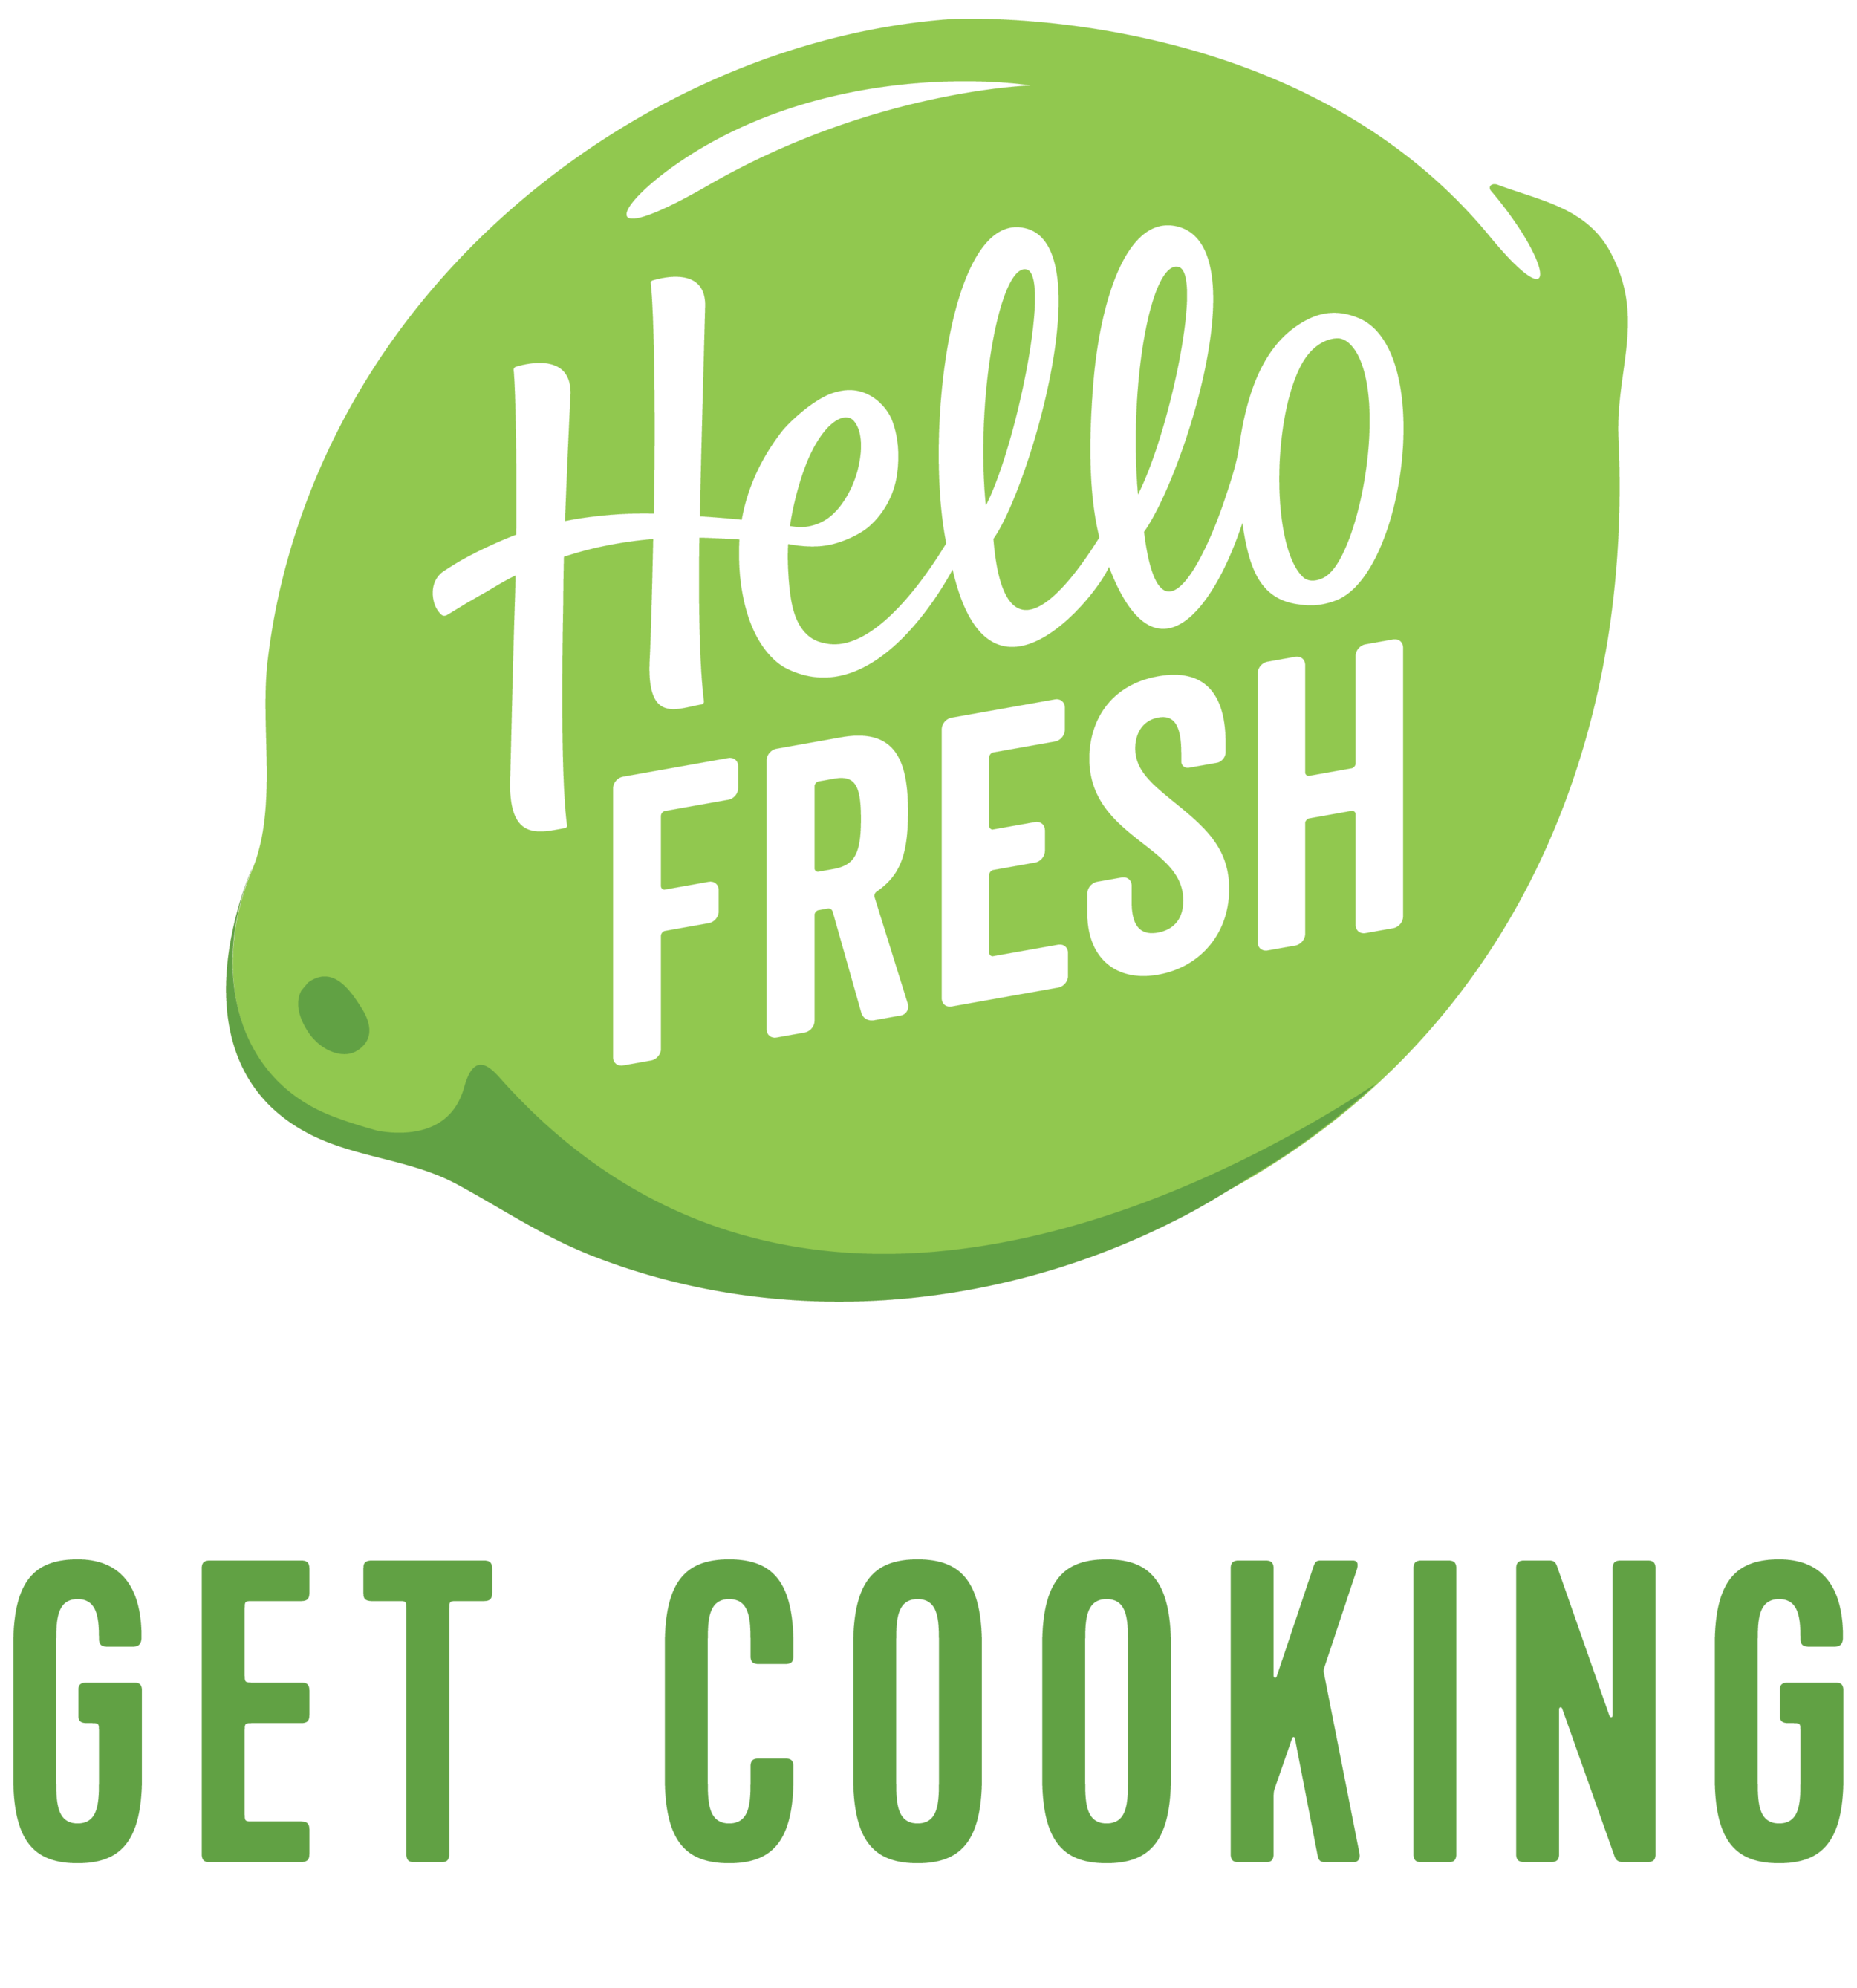 HelloFresh_RGB_Stacked_Simplified_Get_Cooking_Green.png